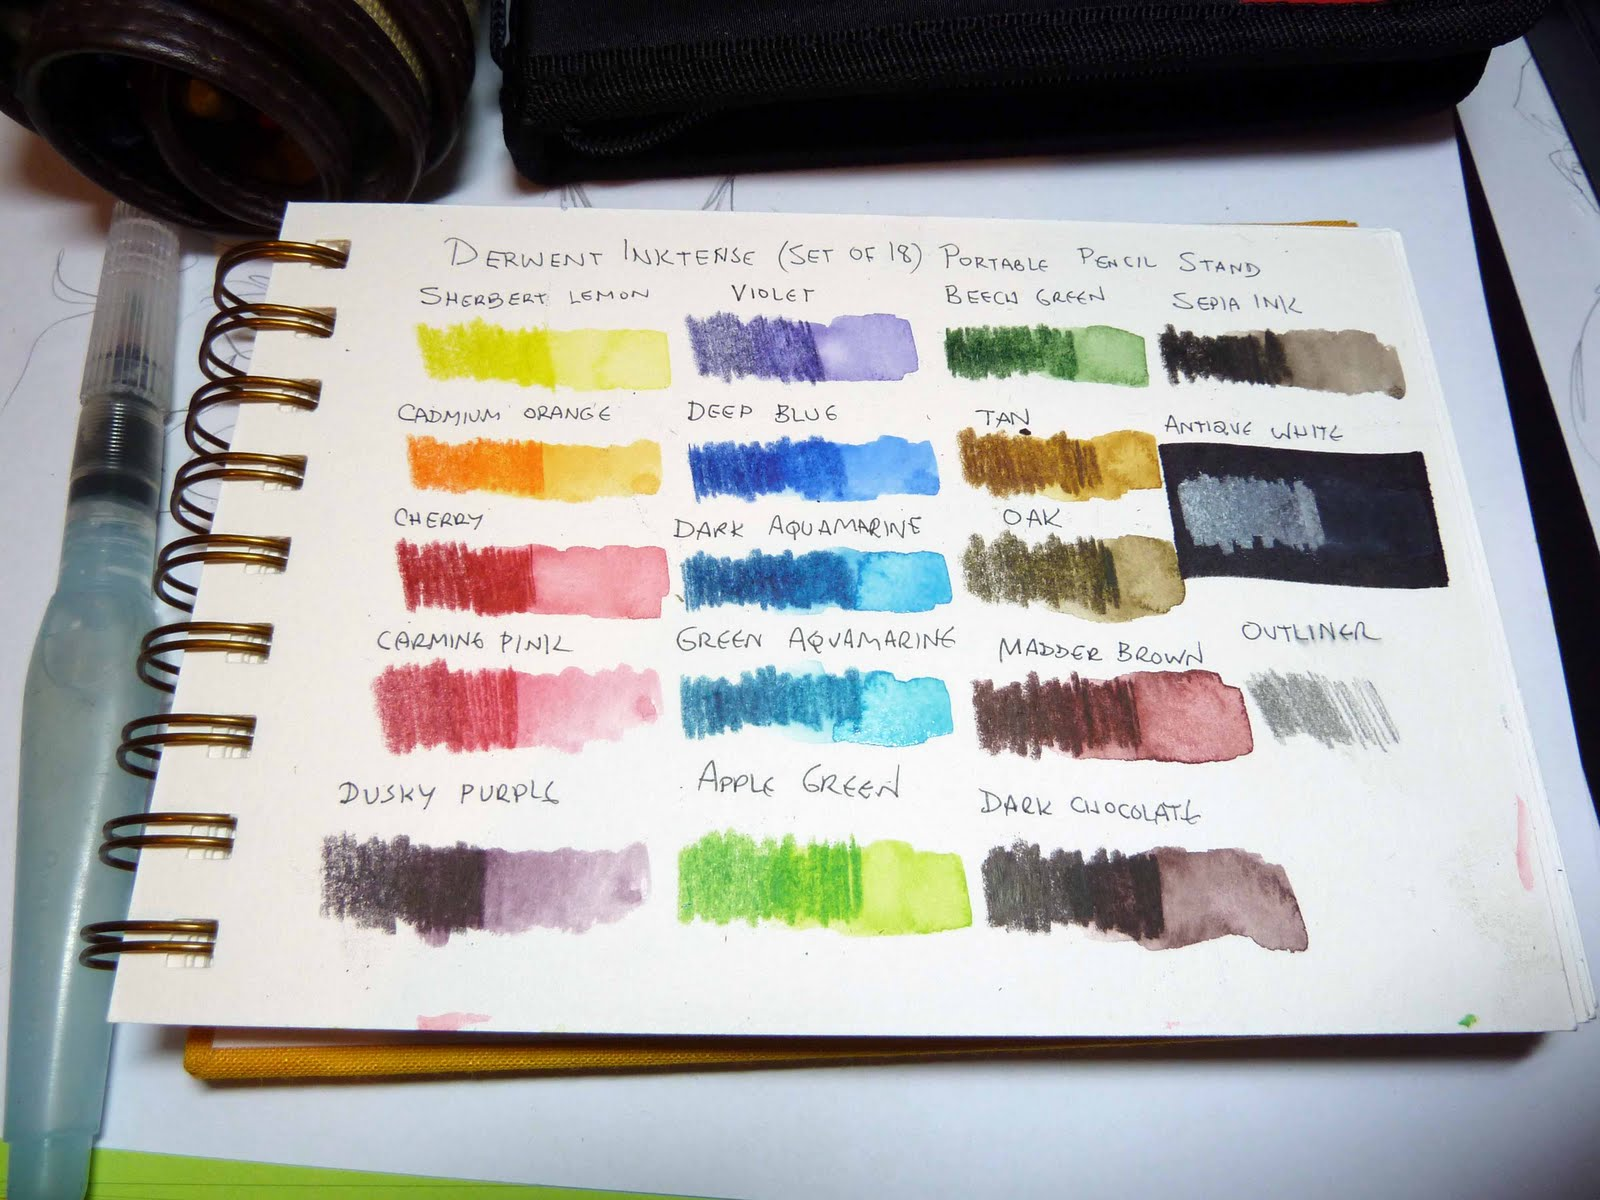 Derwent Inktense Portable Pencil Stand Spotlight Color Chart And